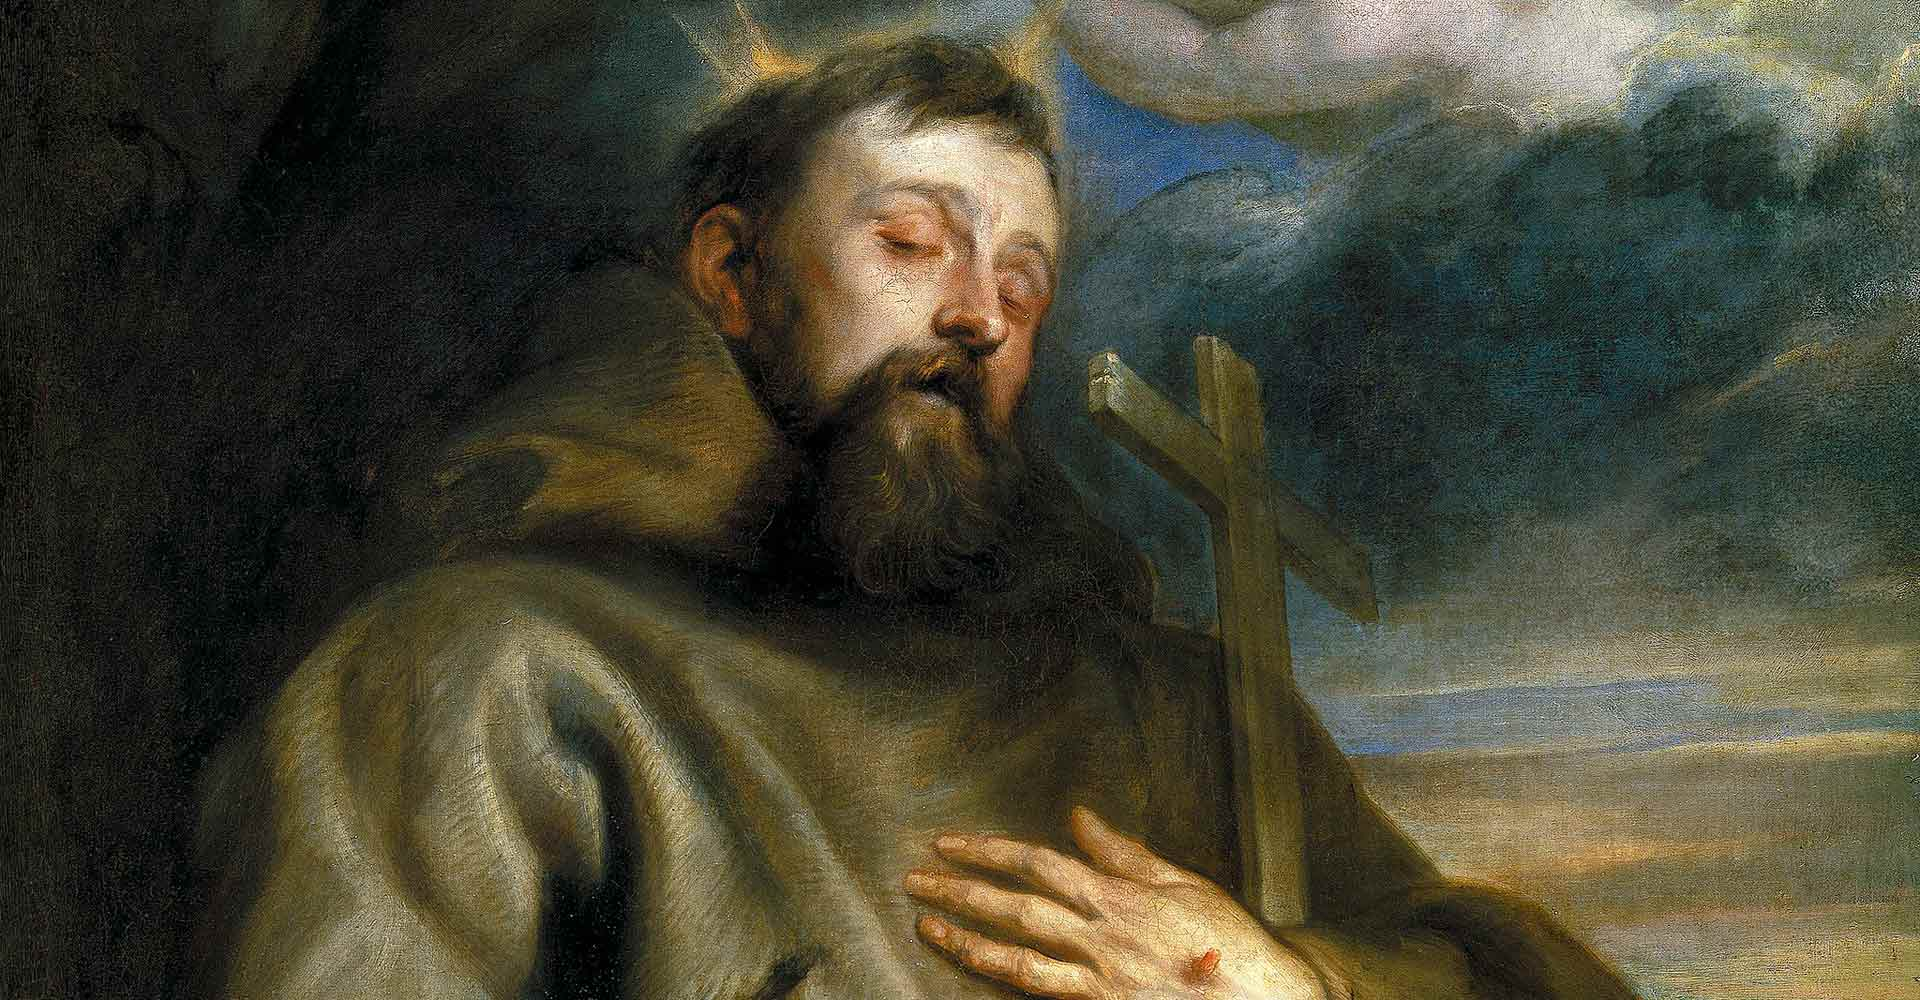 St. Francis of Assisi in Ecstasy